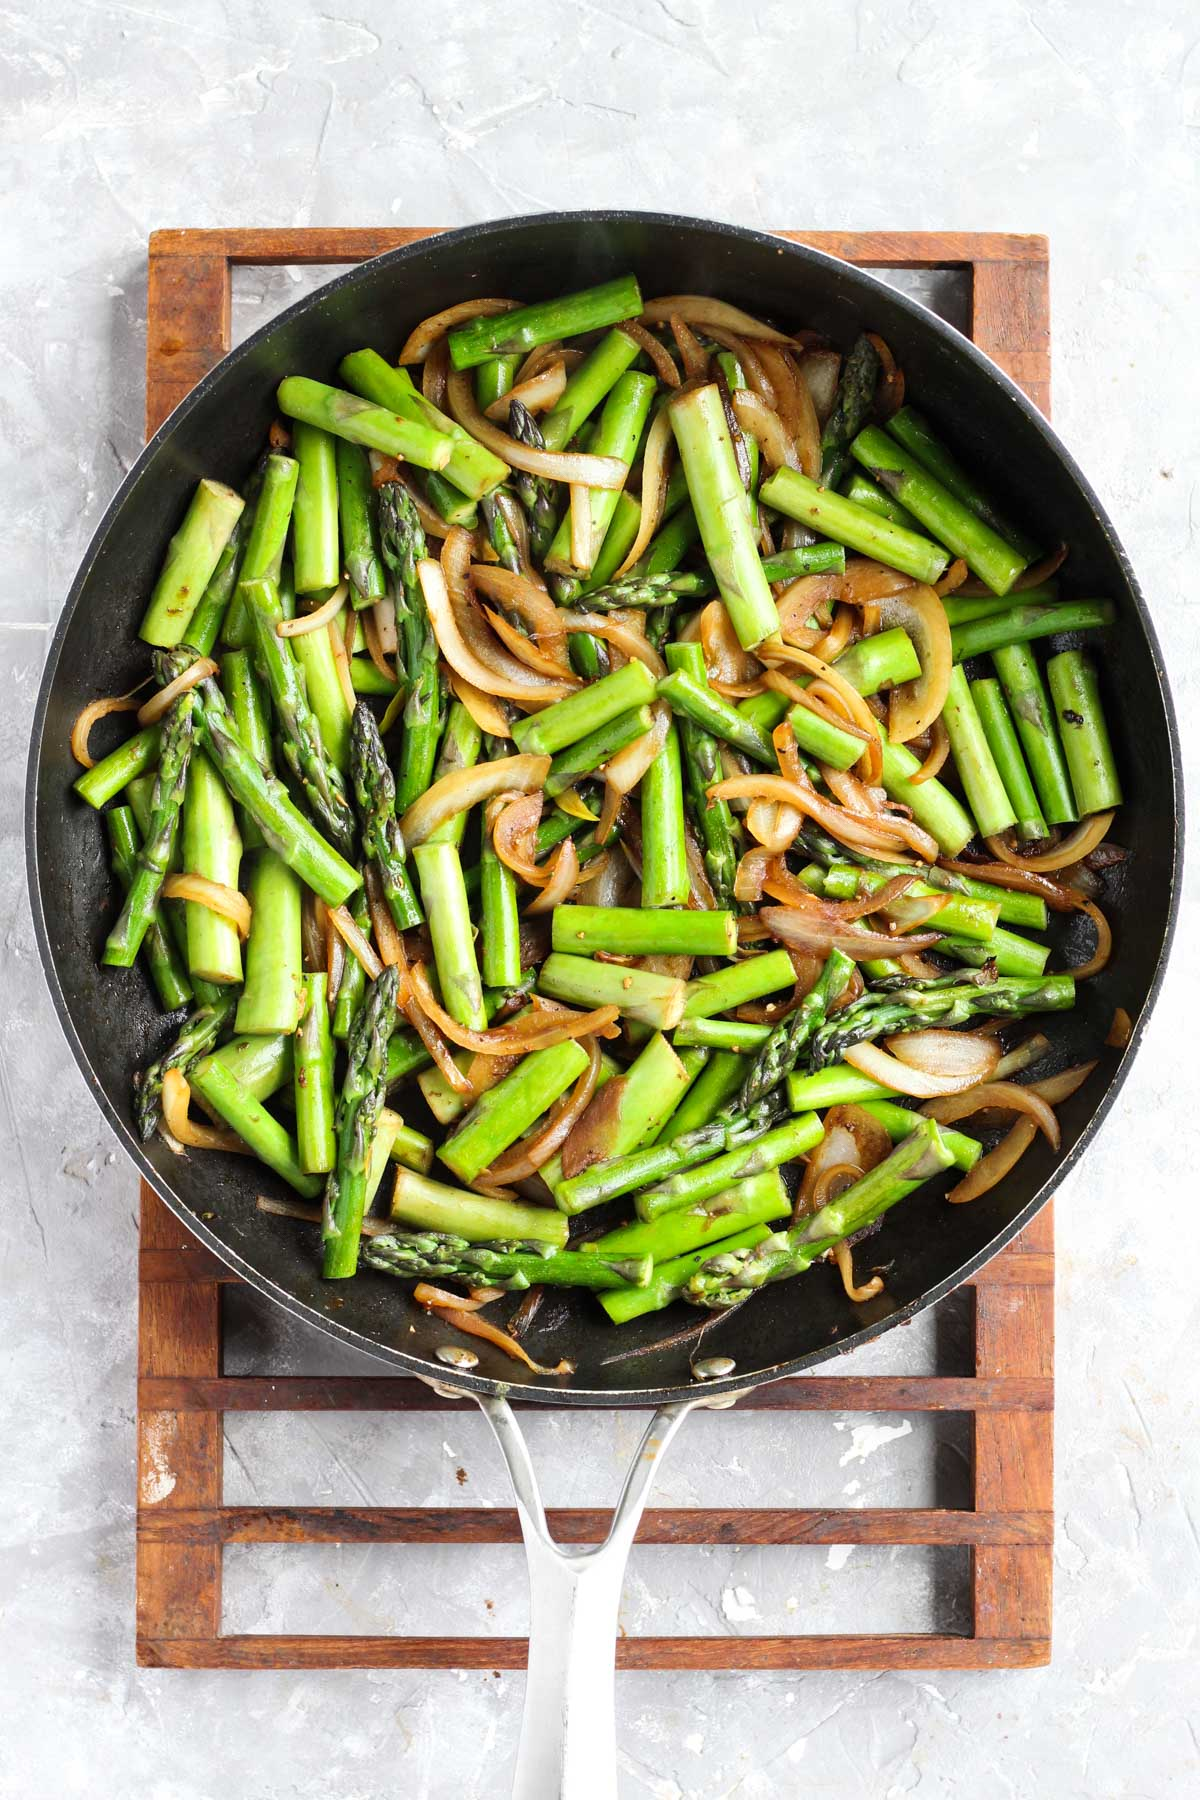 Cooked vegetables in frying pan.